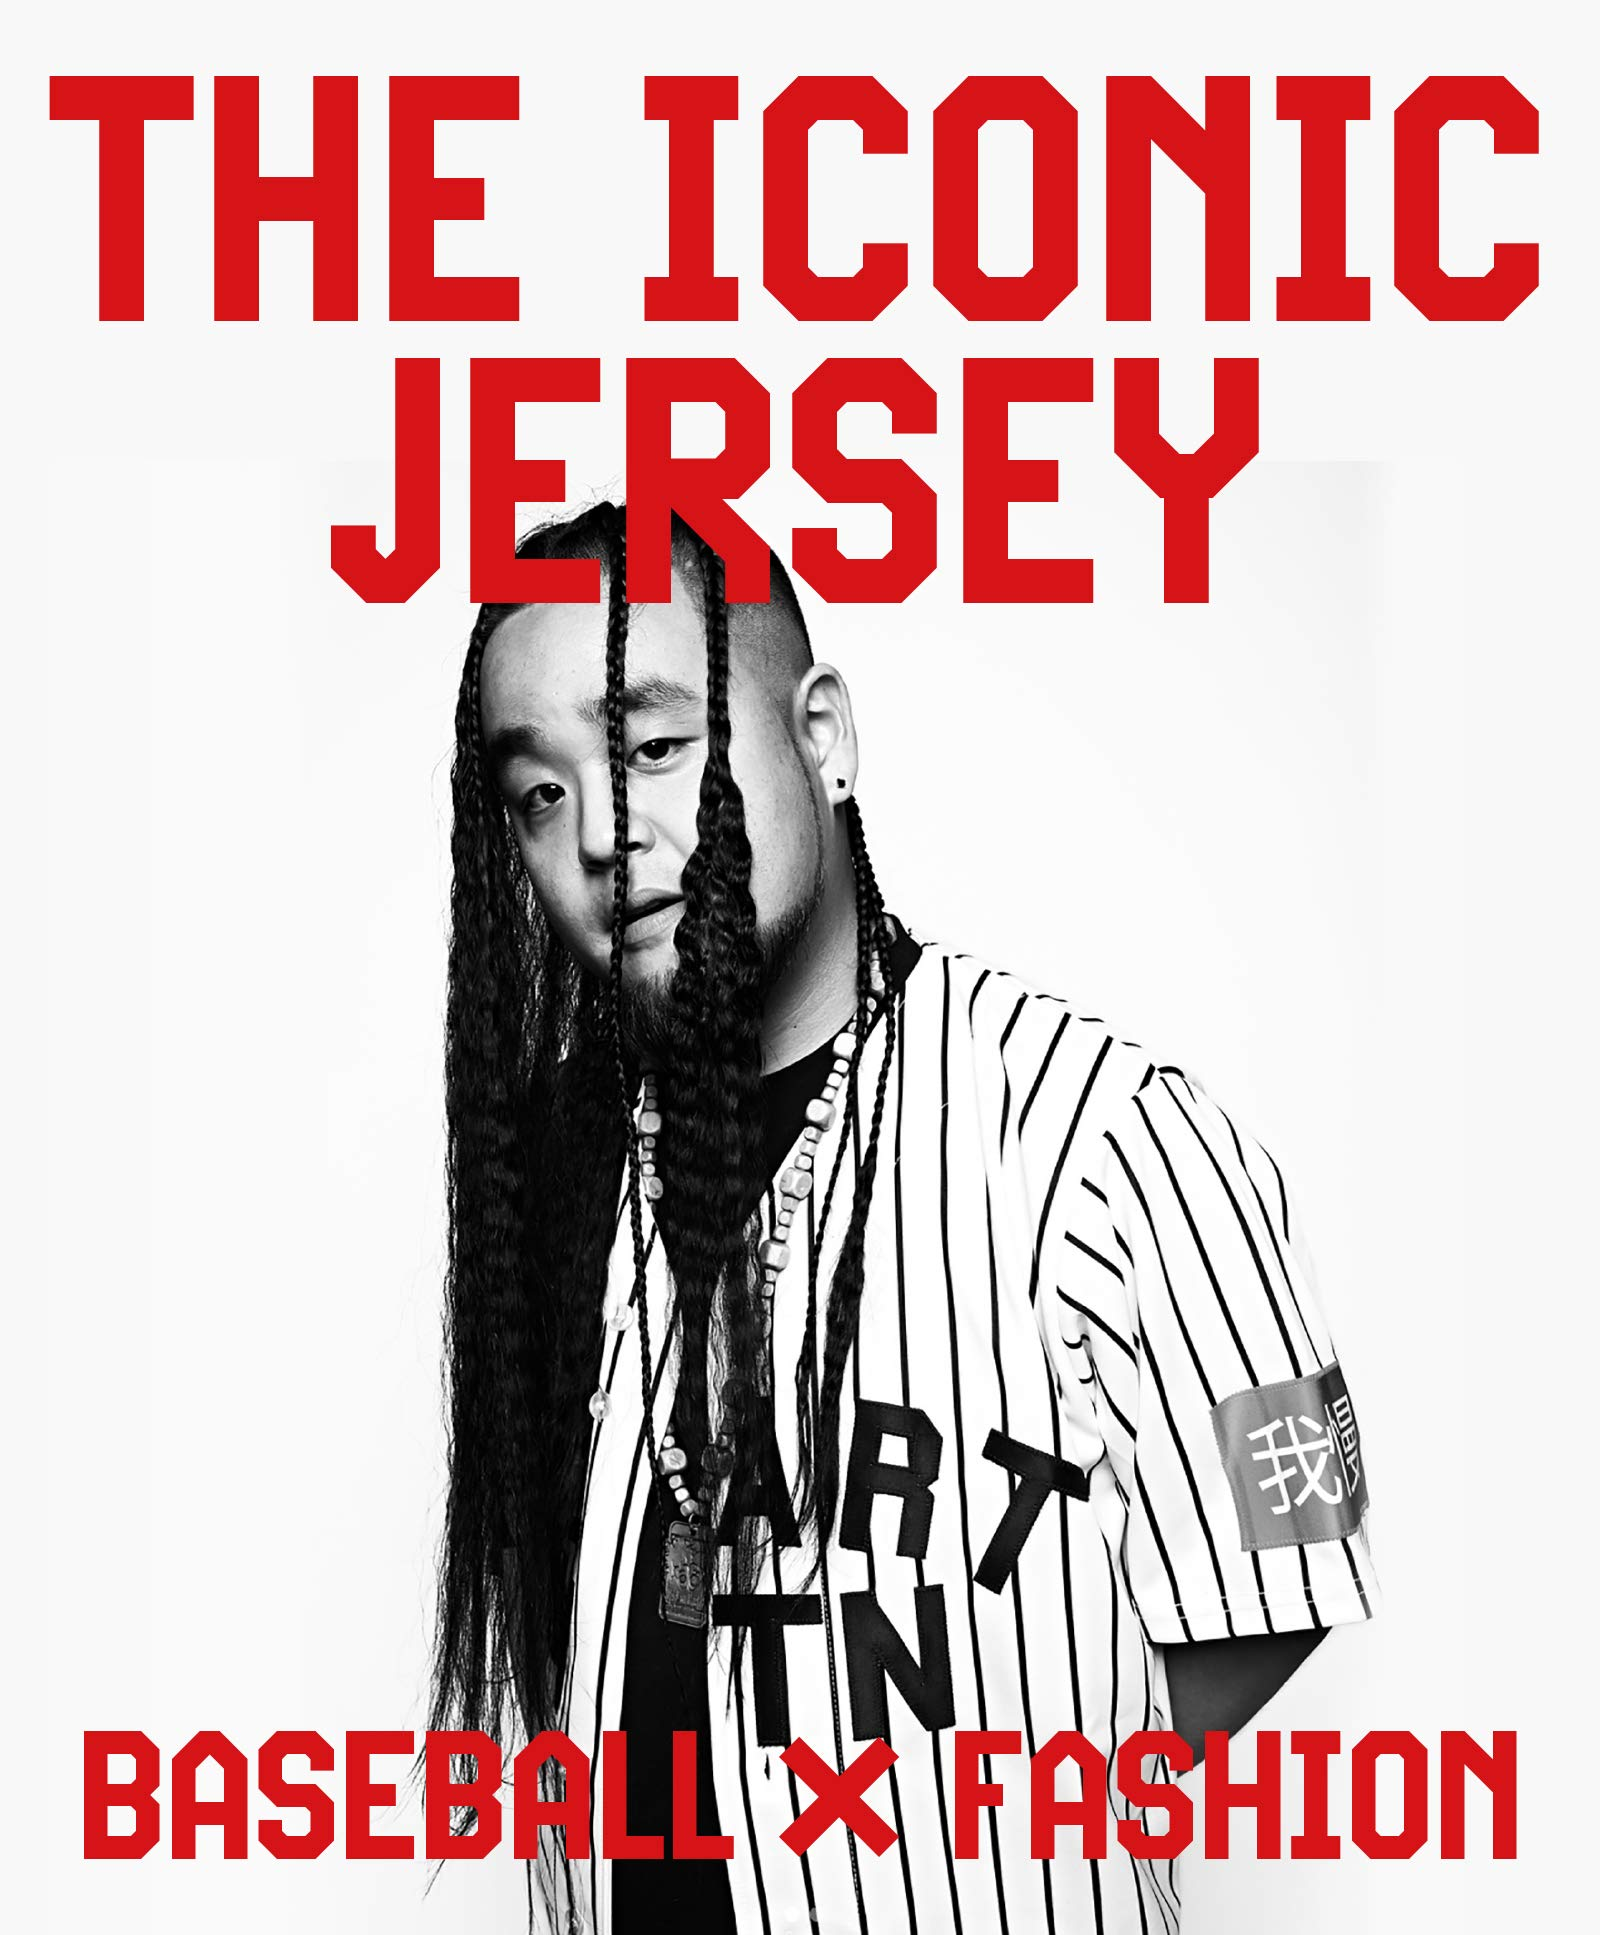 The Iconic Jersey: Baseball x Fashion